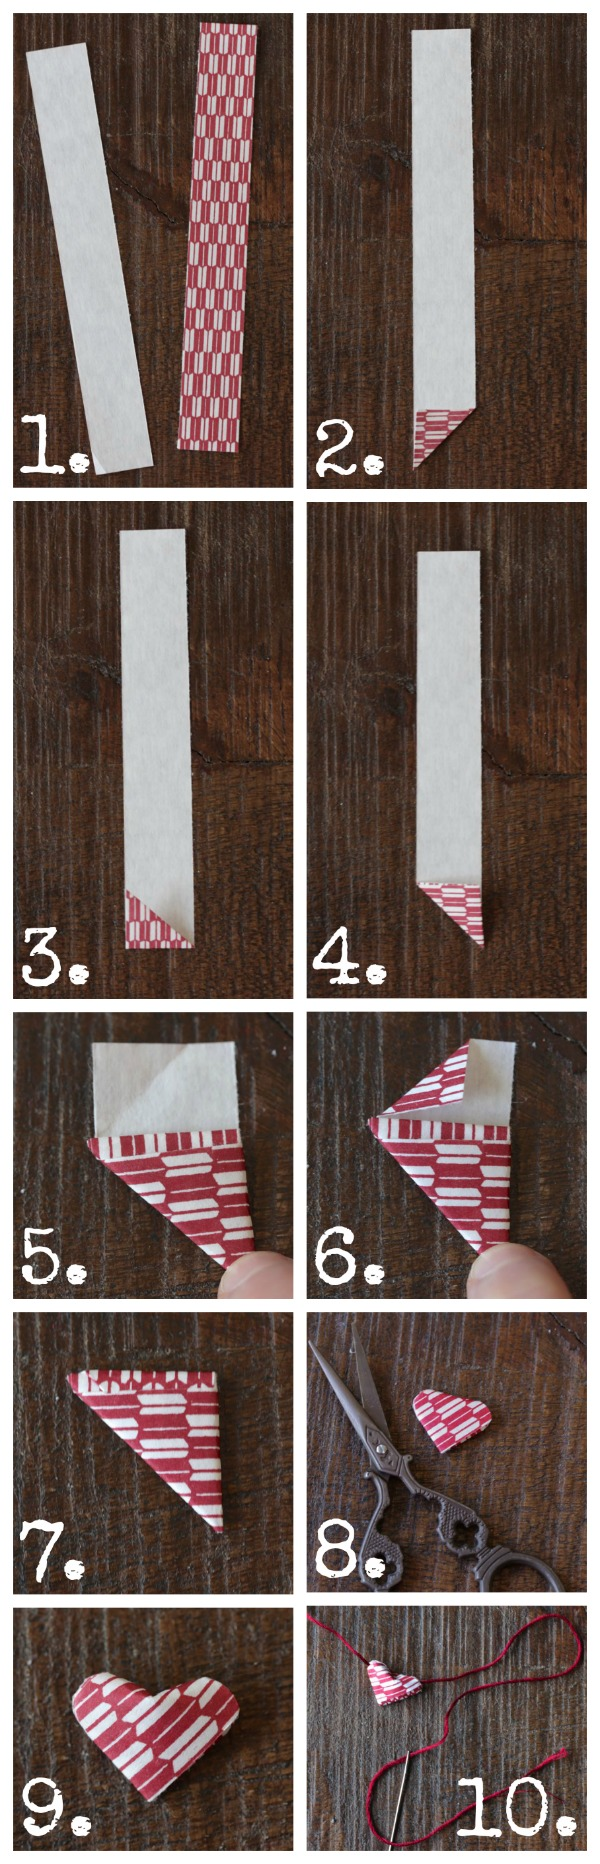 Origami Heart Pocket Instructions | Free Printable Papercraft ... | 1864x600